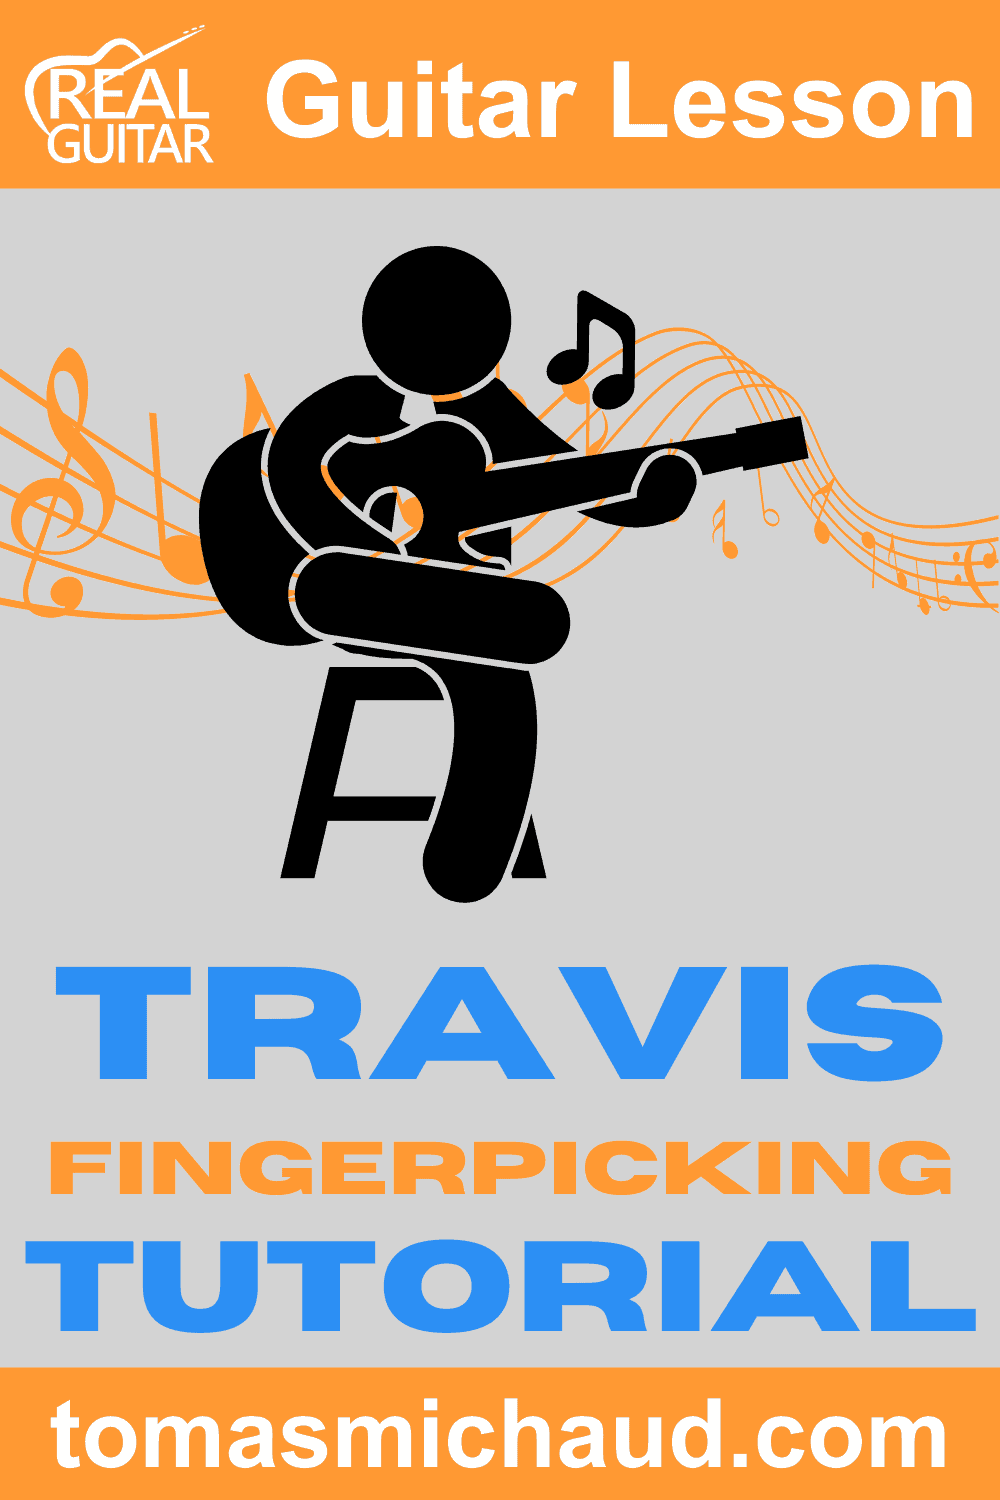 Travis Fingerpicking Tutorial